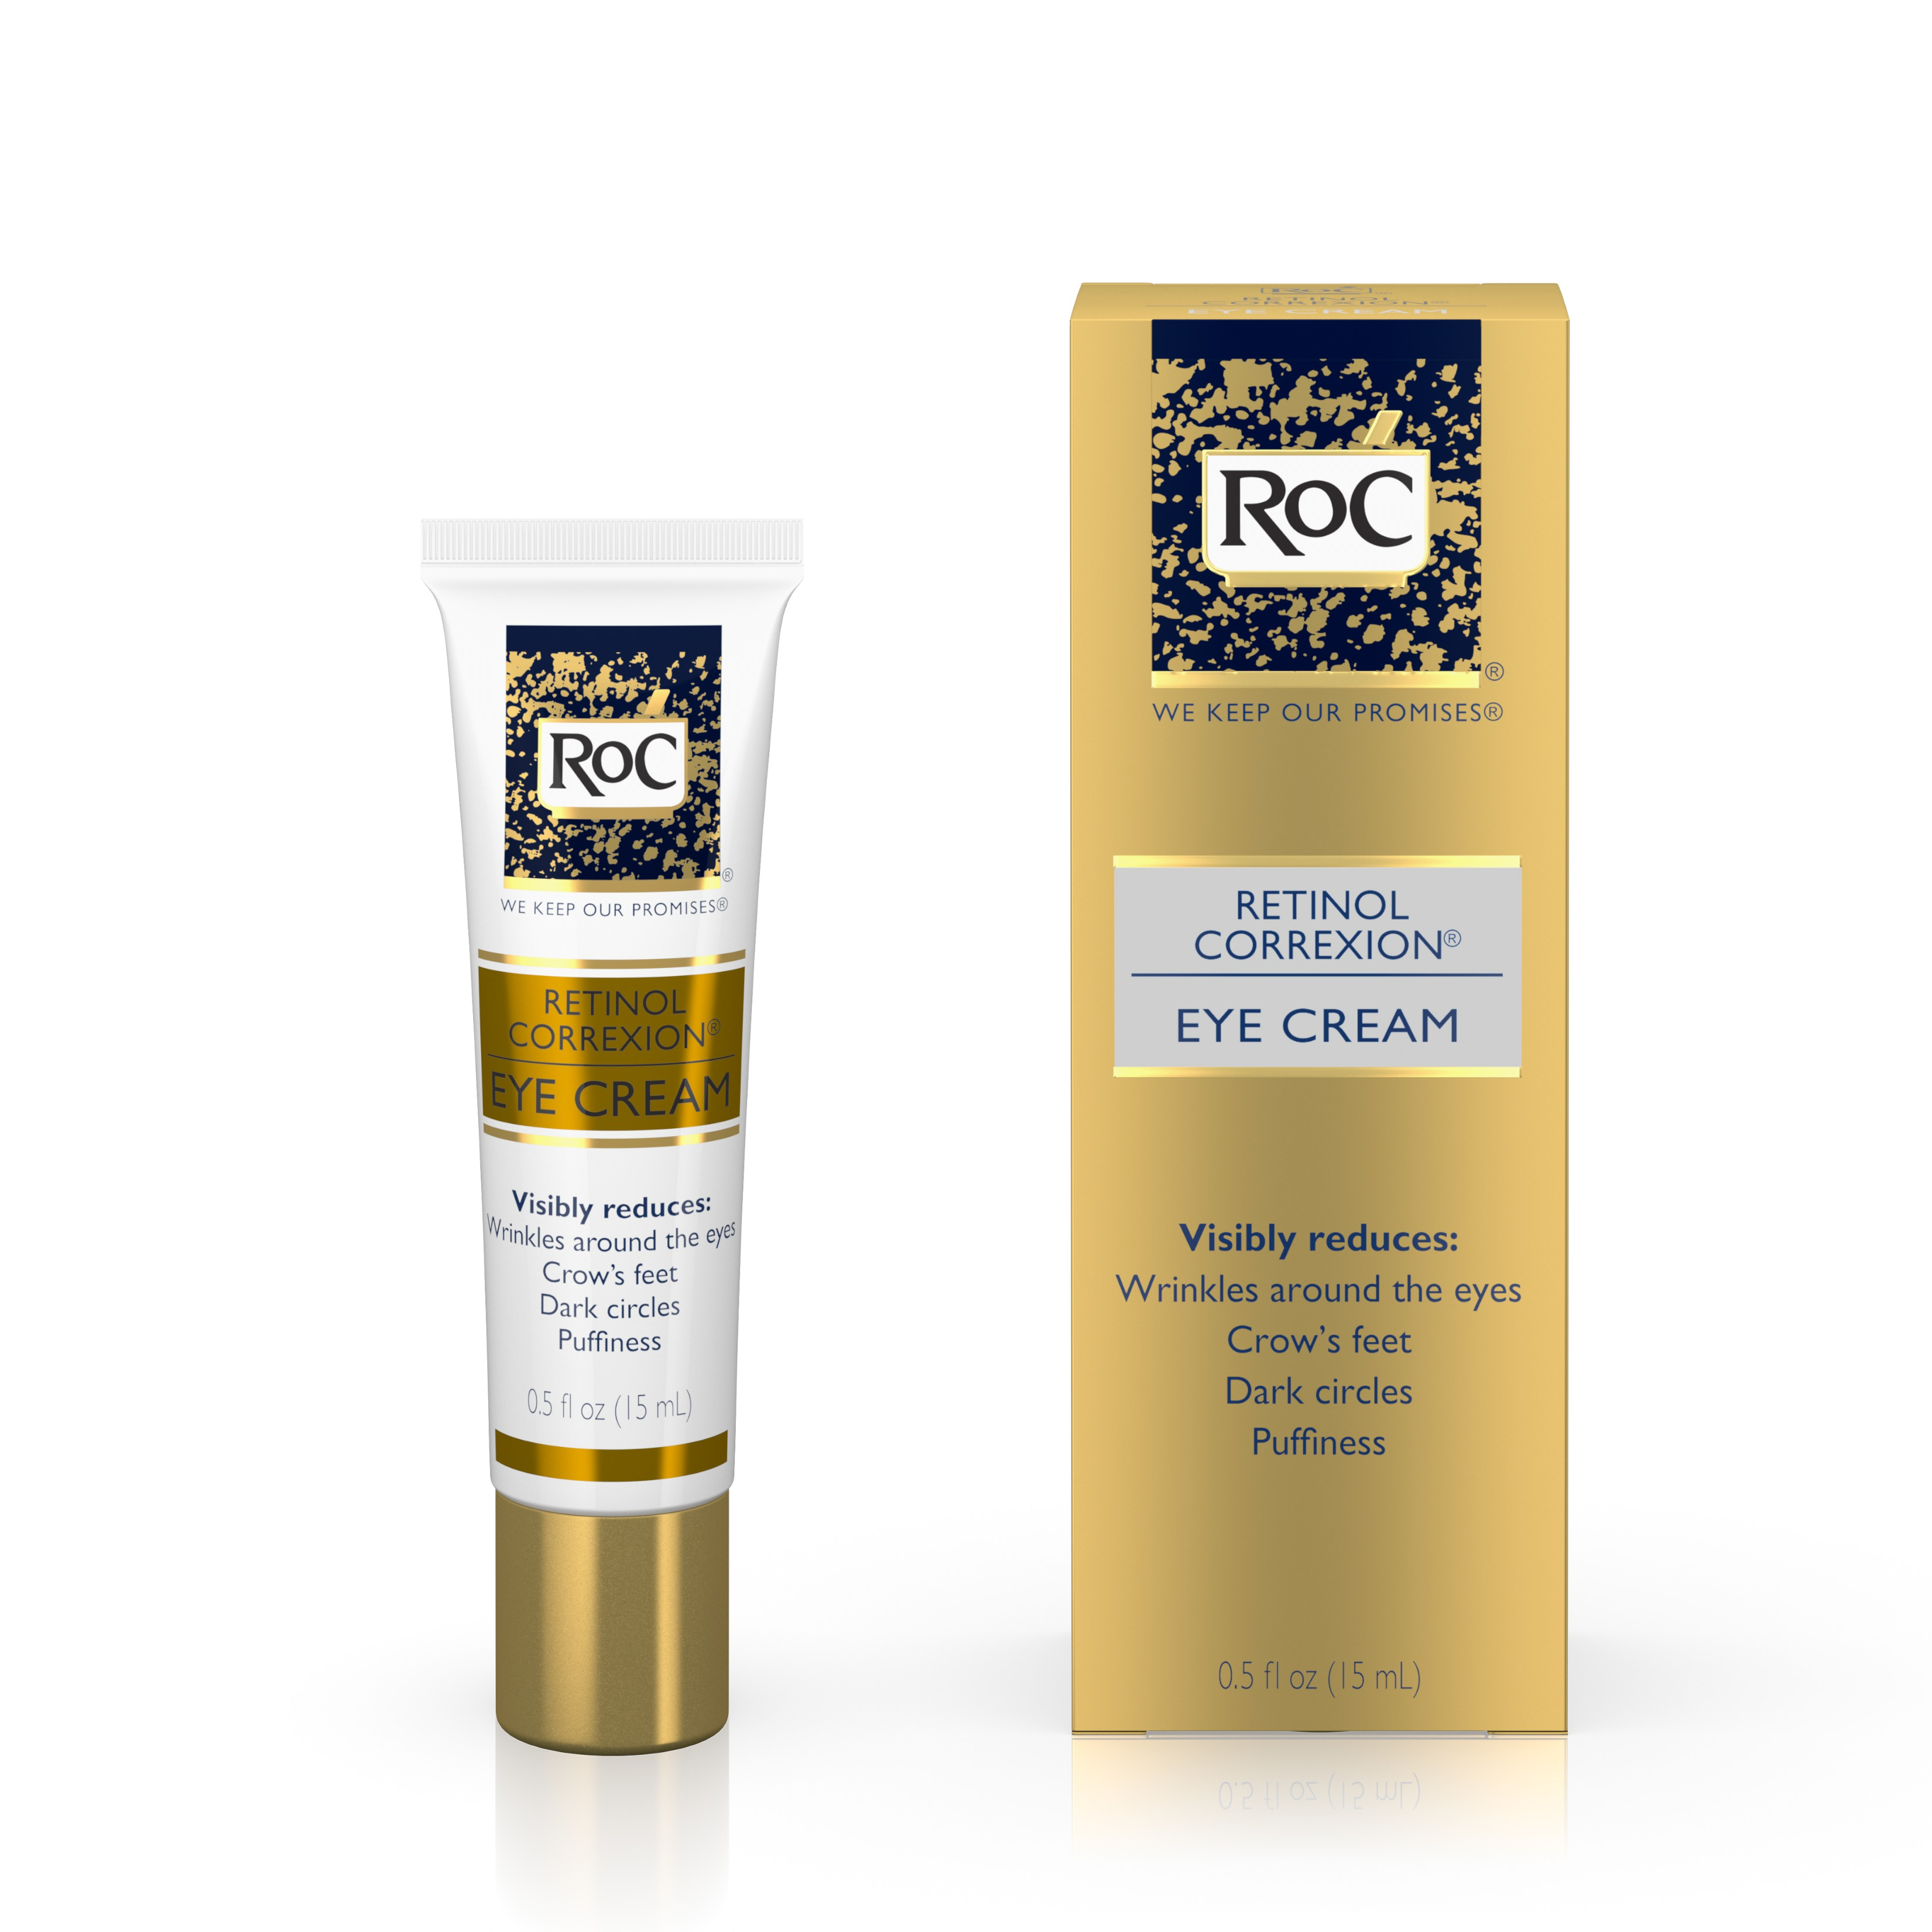 RoC Retinol Correxion Anti-Aging Eye Cream Treatment,.5 fl. oz